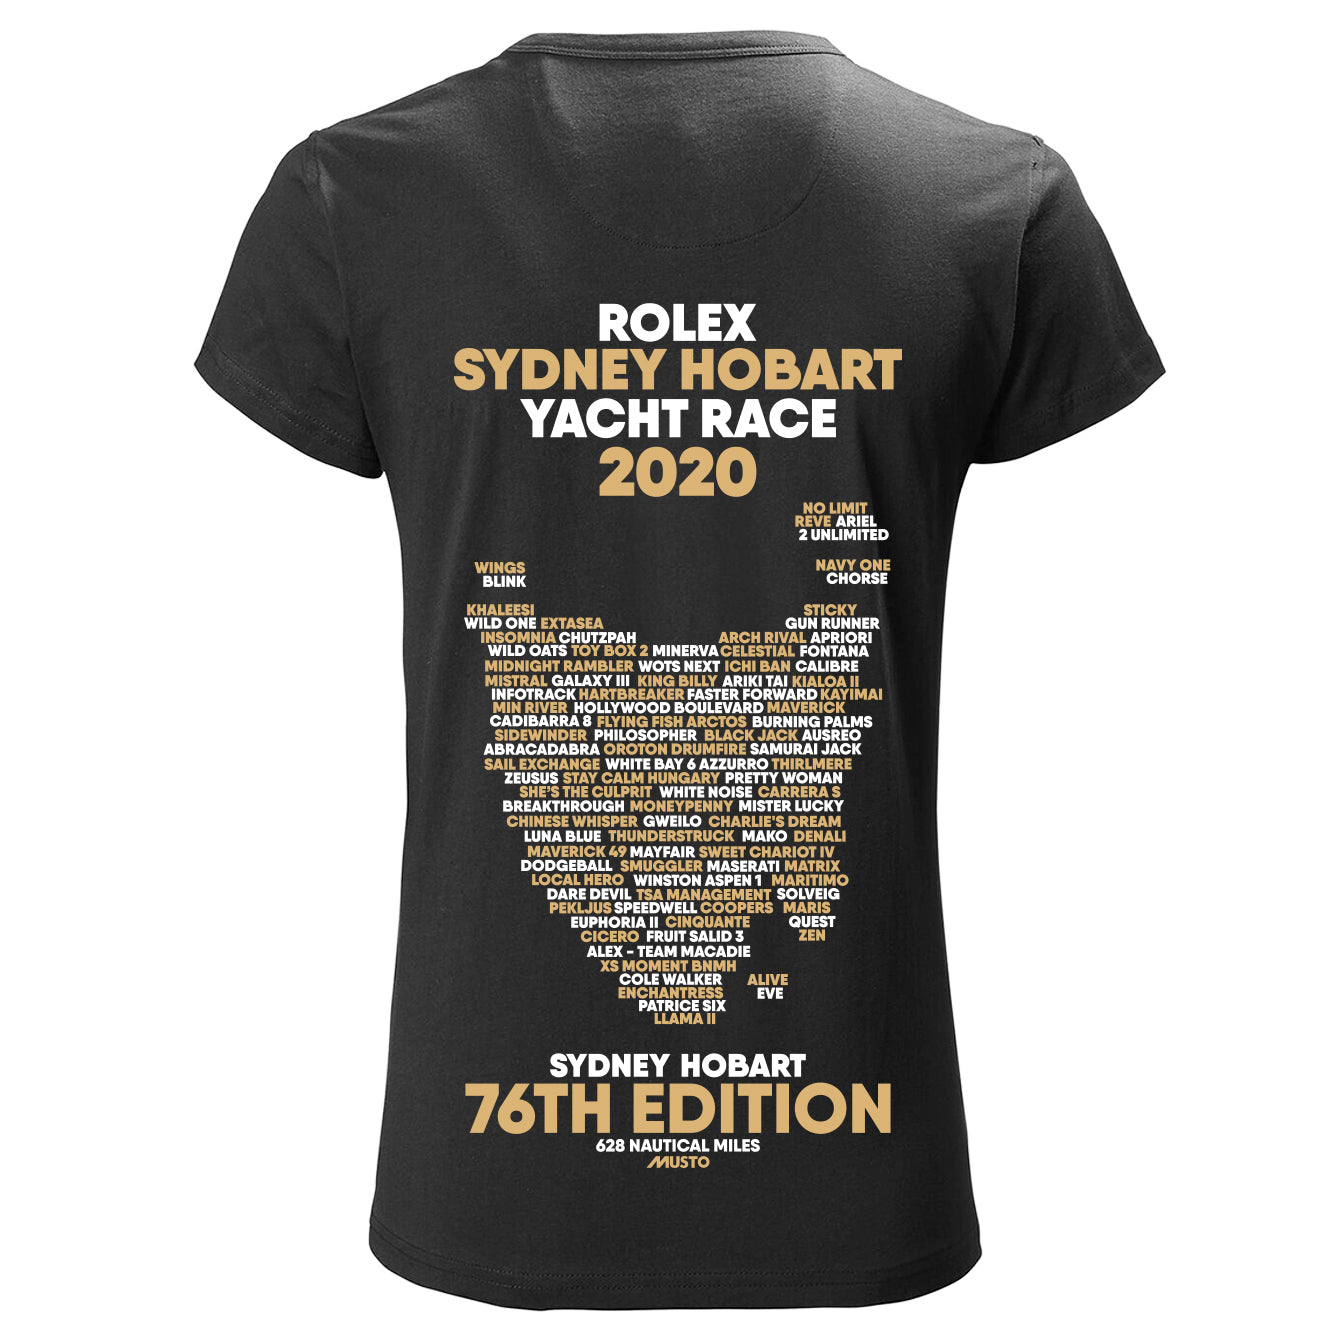 RSHYR WOMENS BOAT NAME TSHIRT